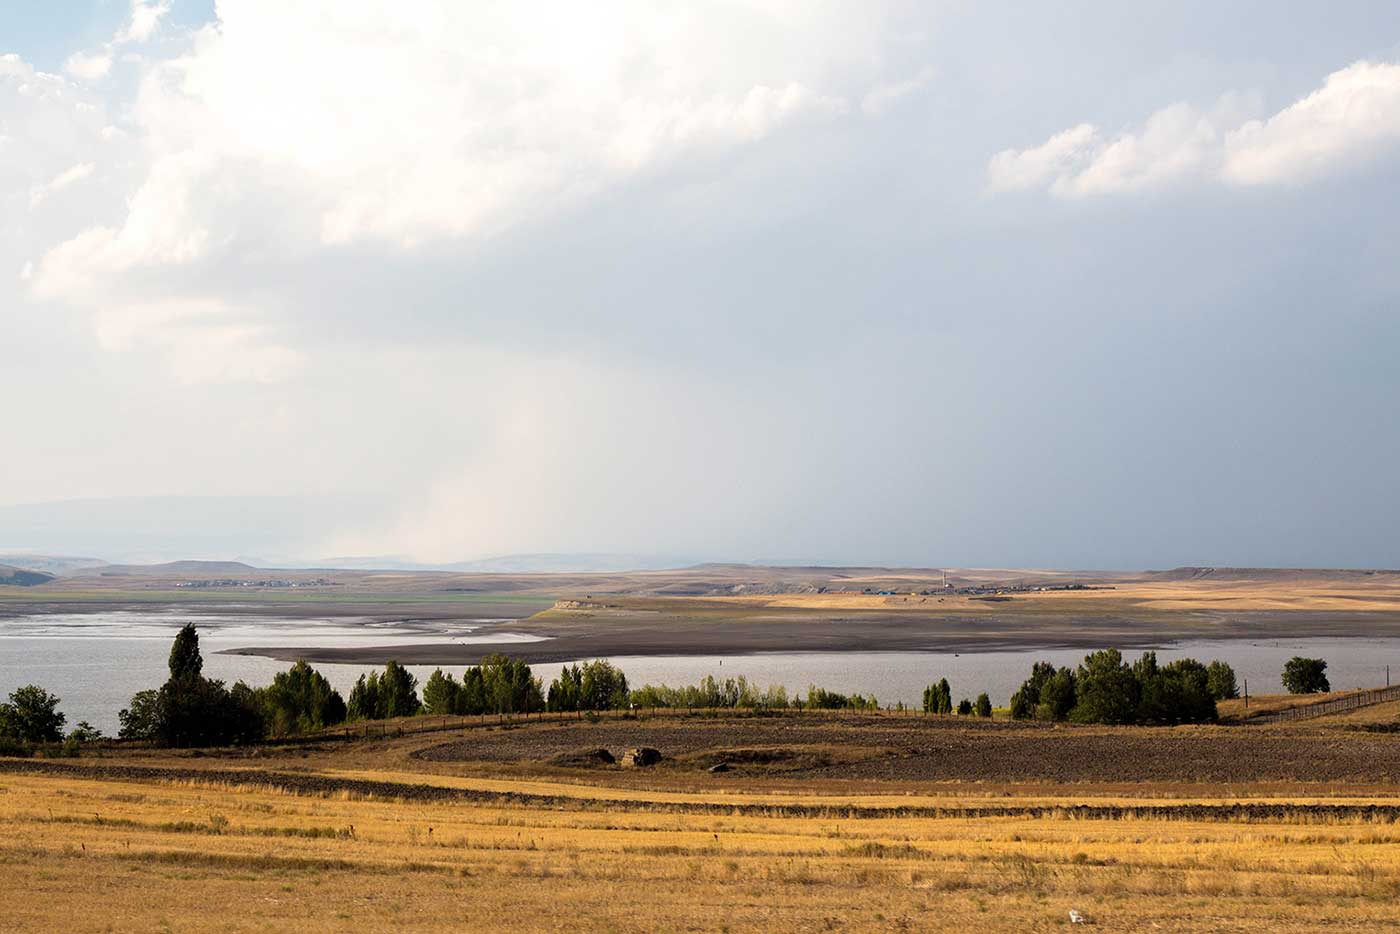 Turkey –viewed from Armenia, across the Akhurian River that forms the border.